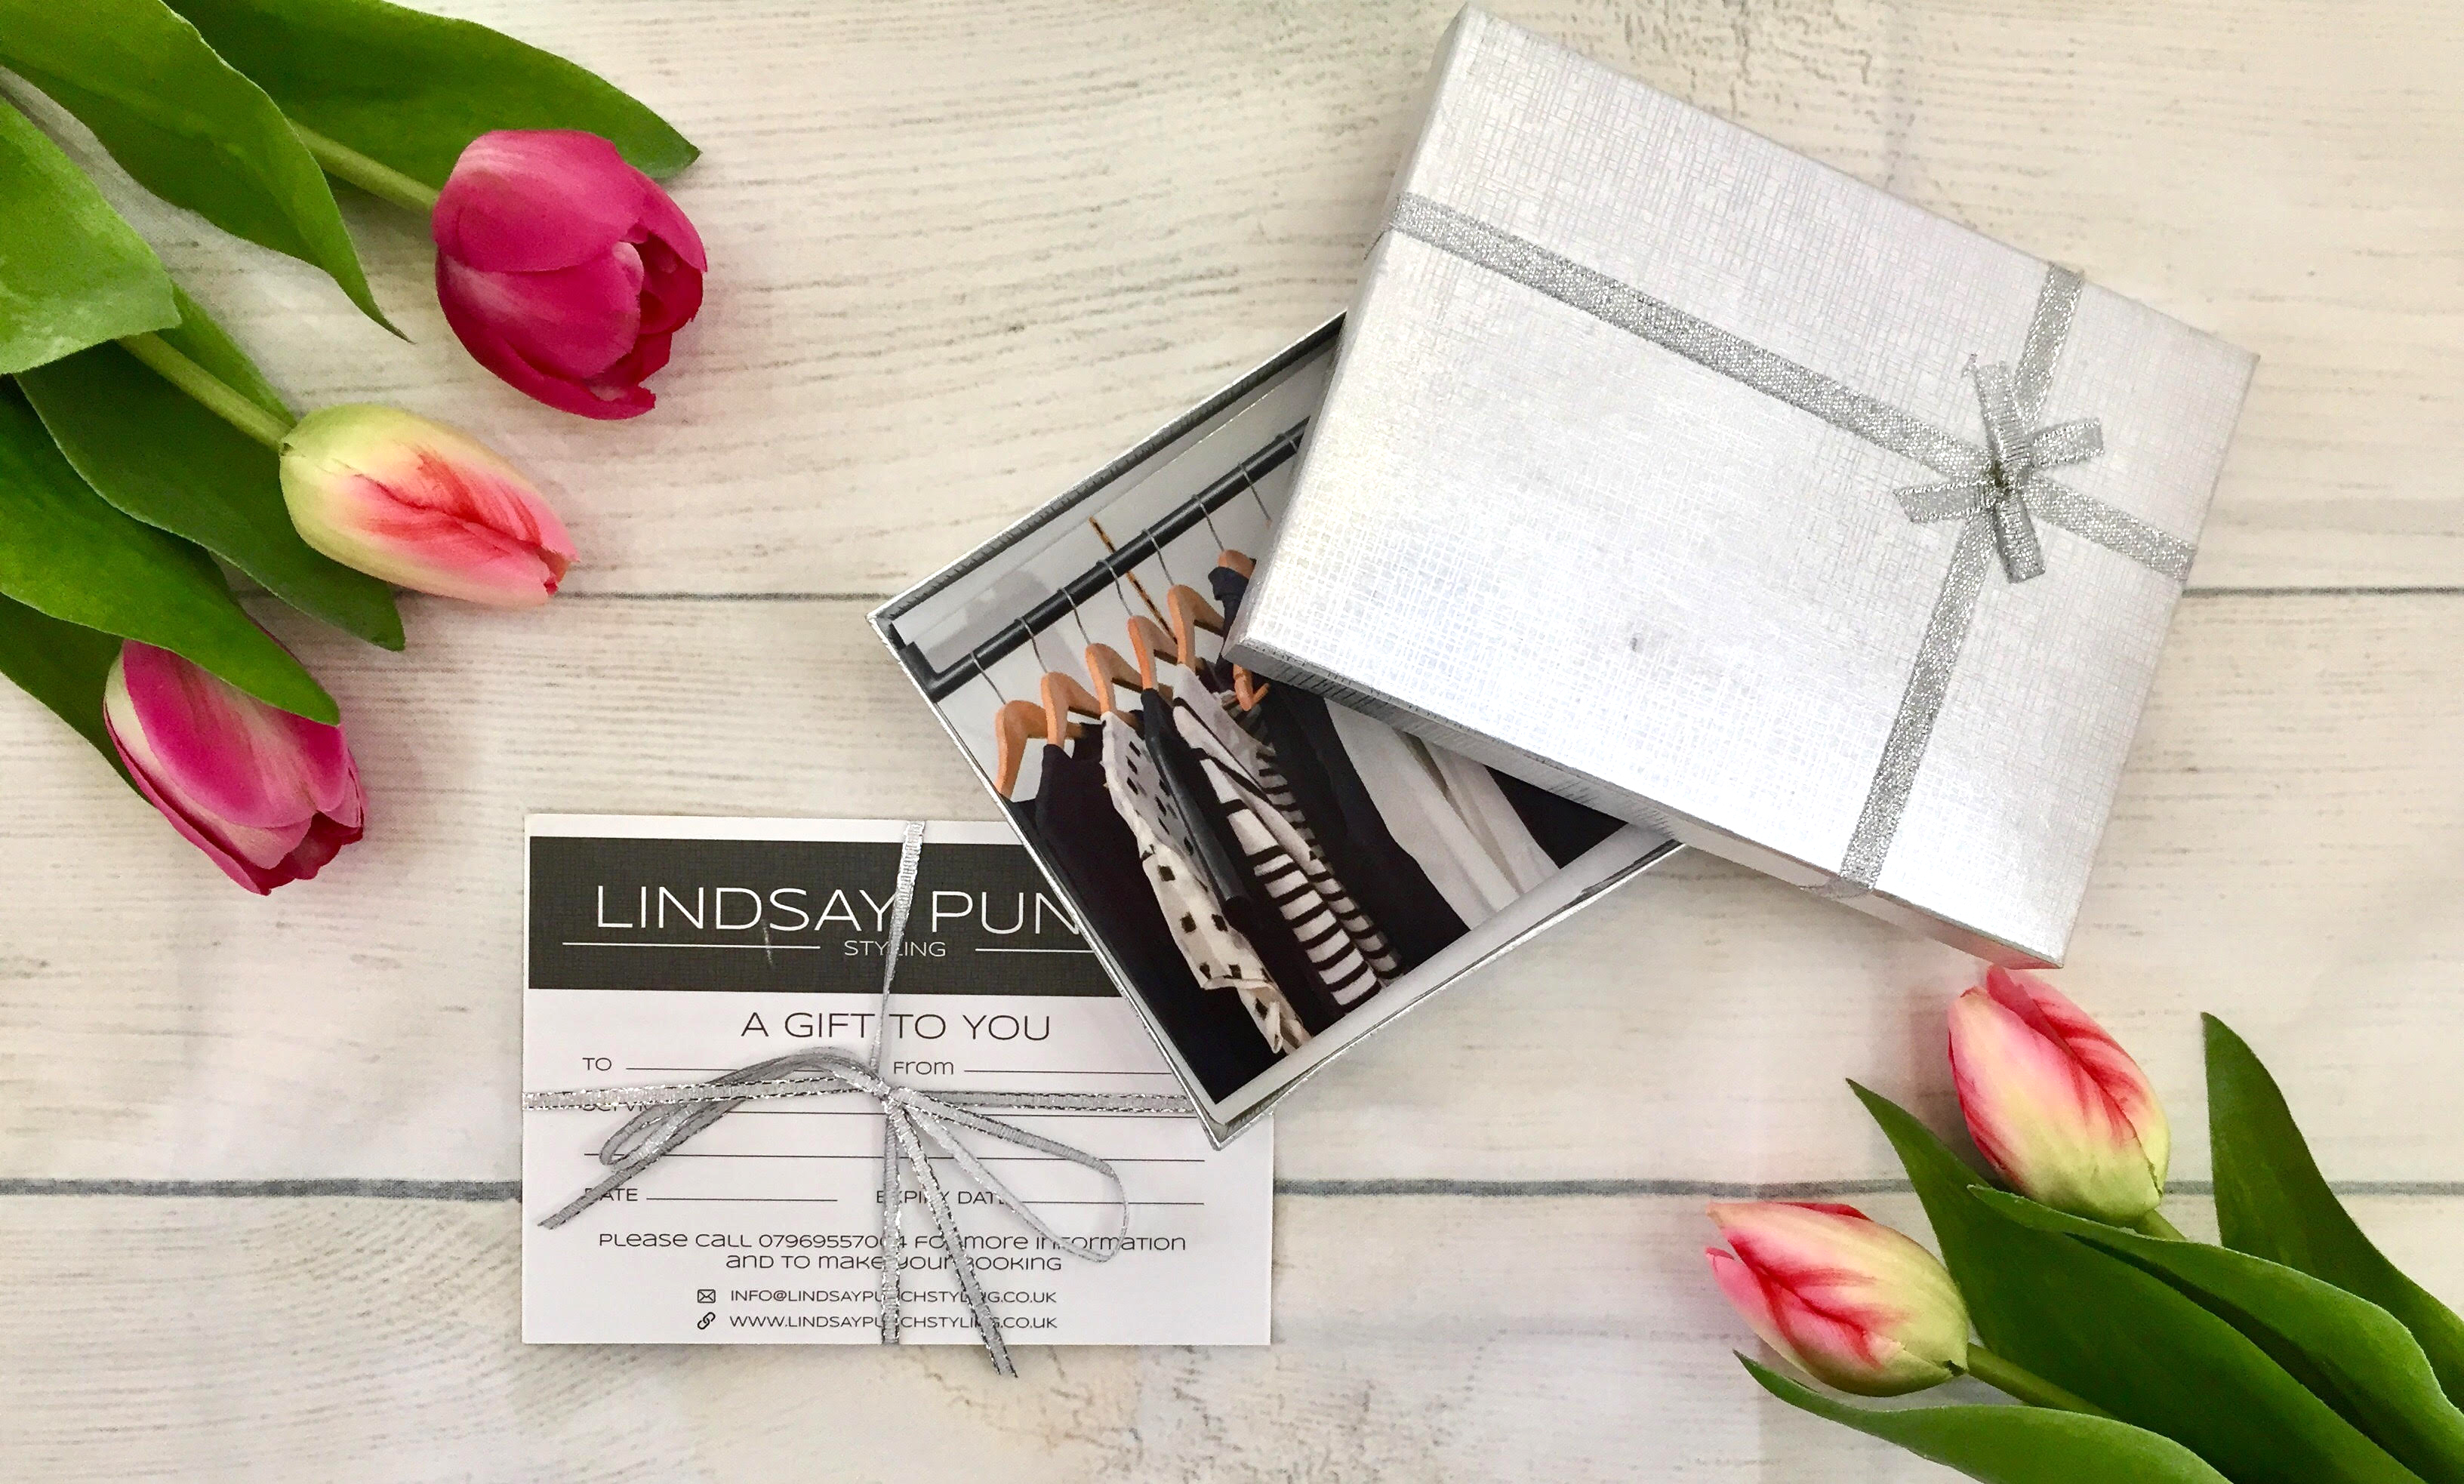 Gift Vouchers for Lindsay Punch Stylist